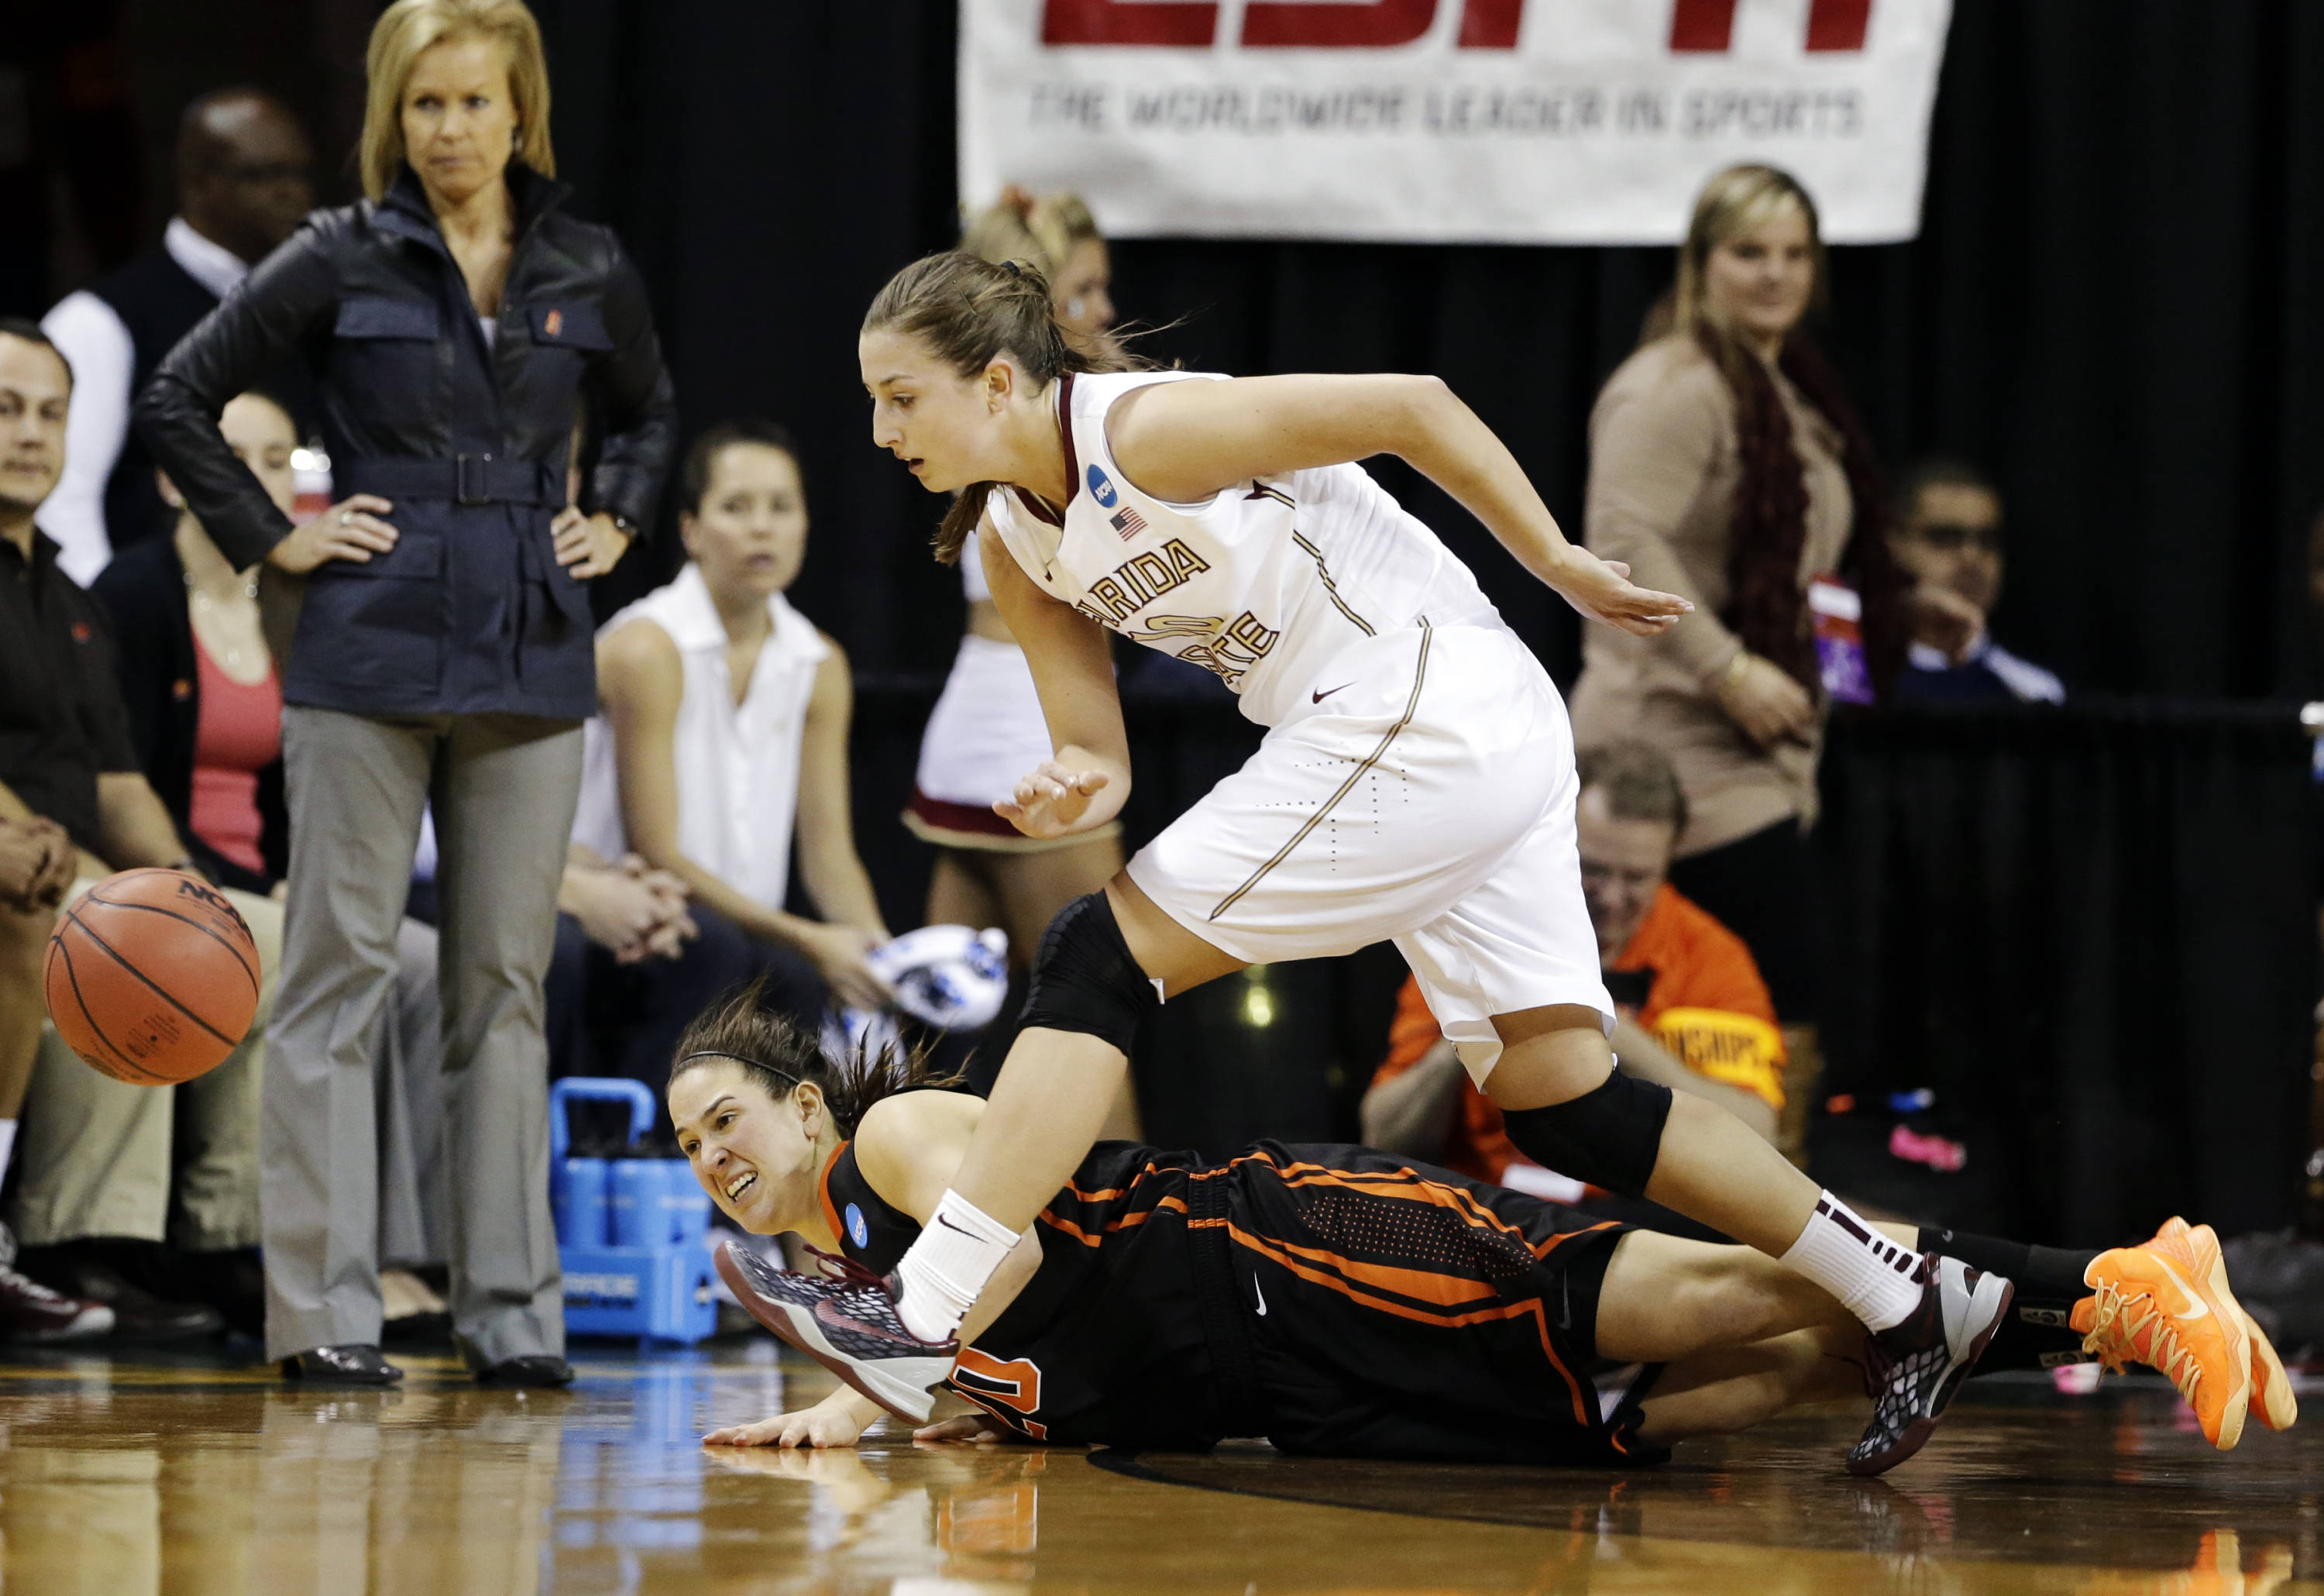 Florida State's Leonor Rodriguez (10) chases down a loose ball against Princeton's Kate Miller, bottom, as Florida State head coach Sue Semrau watches. (AP Photo/Tony Gutierrez)